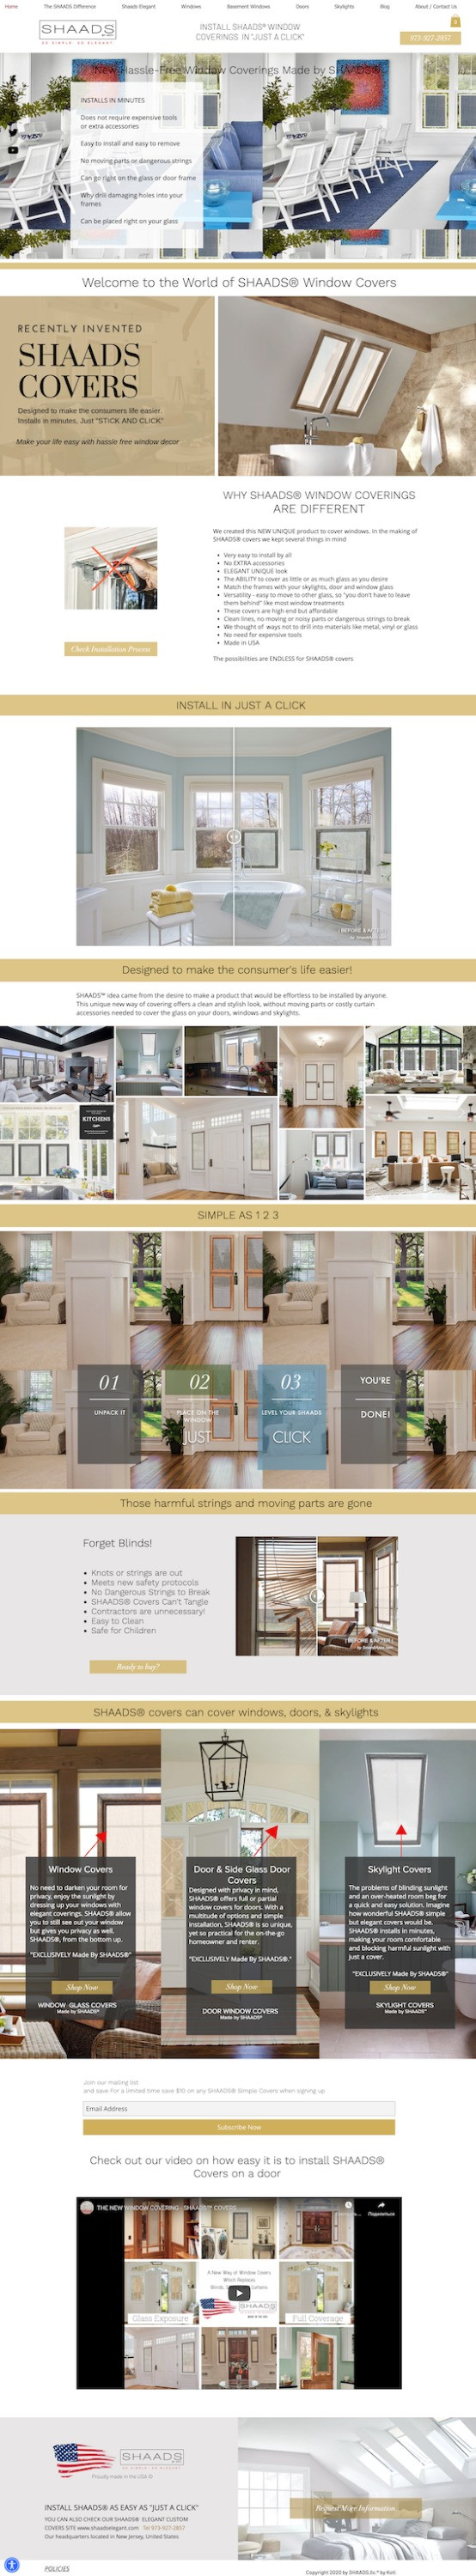 Web design for Shaads in NJ